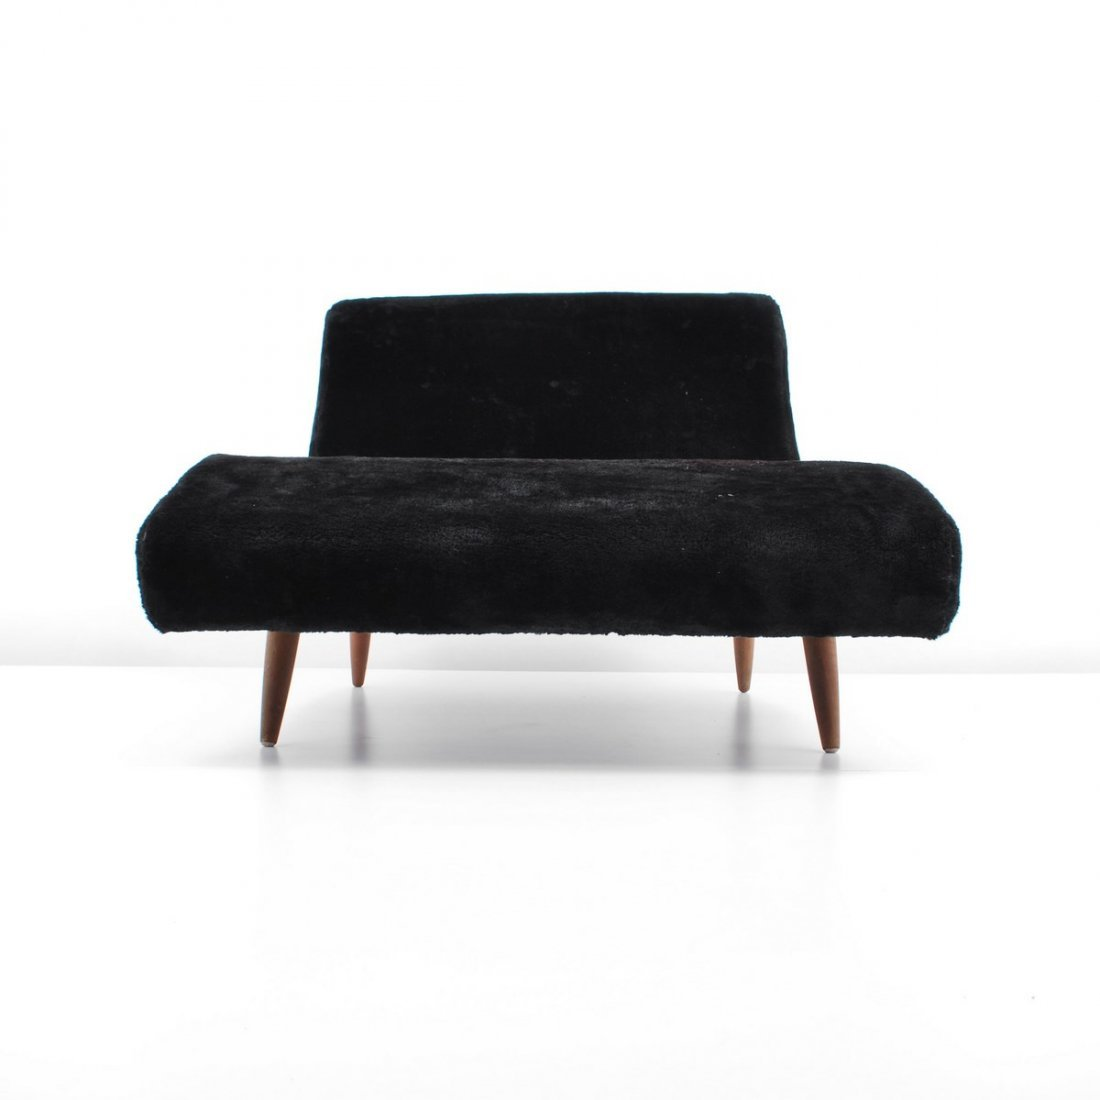 """Adrian Pearsall """"Wave"""" Chaise Lounge Chair - 4"""